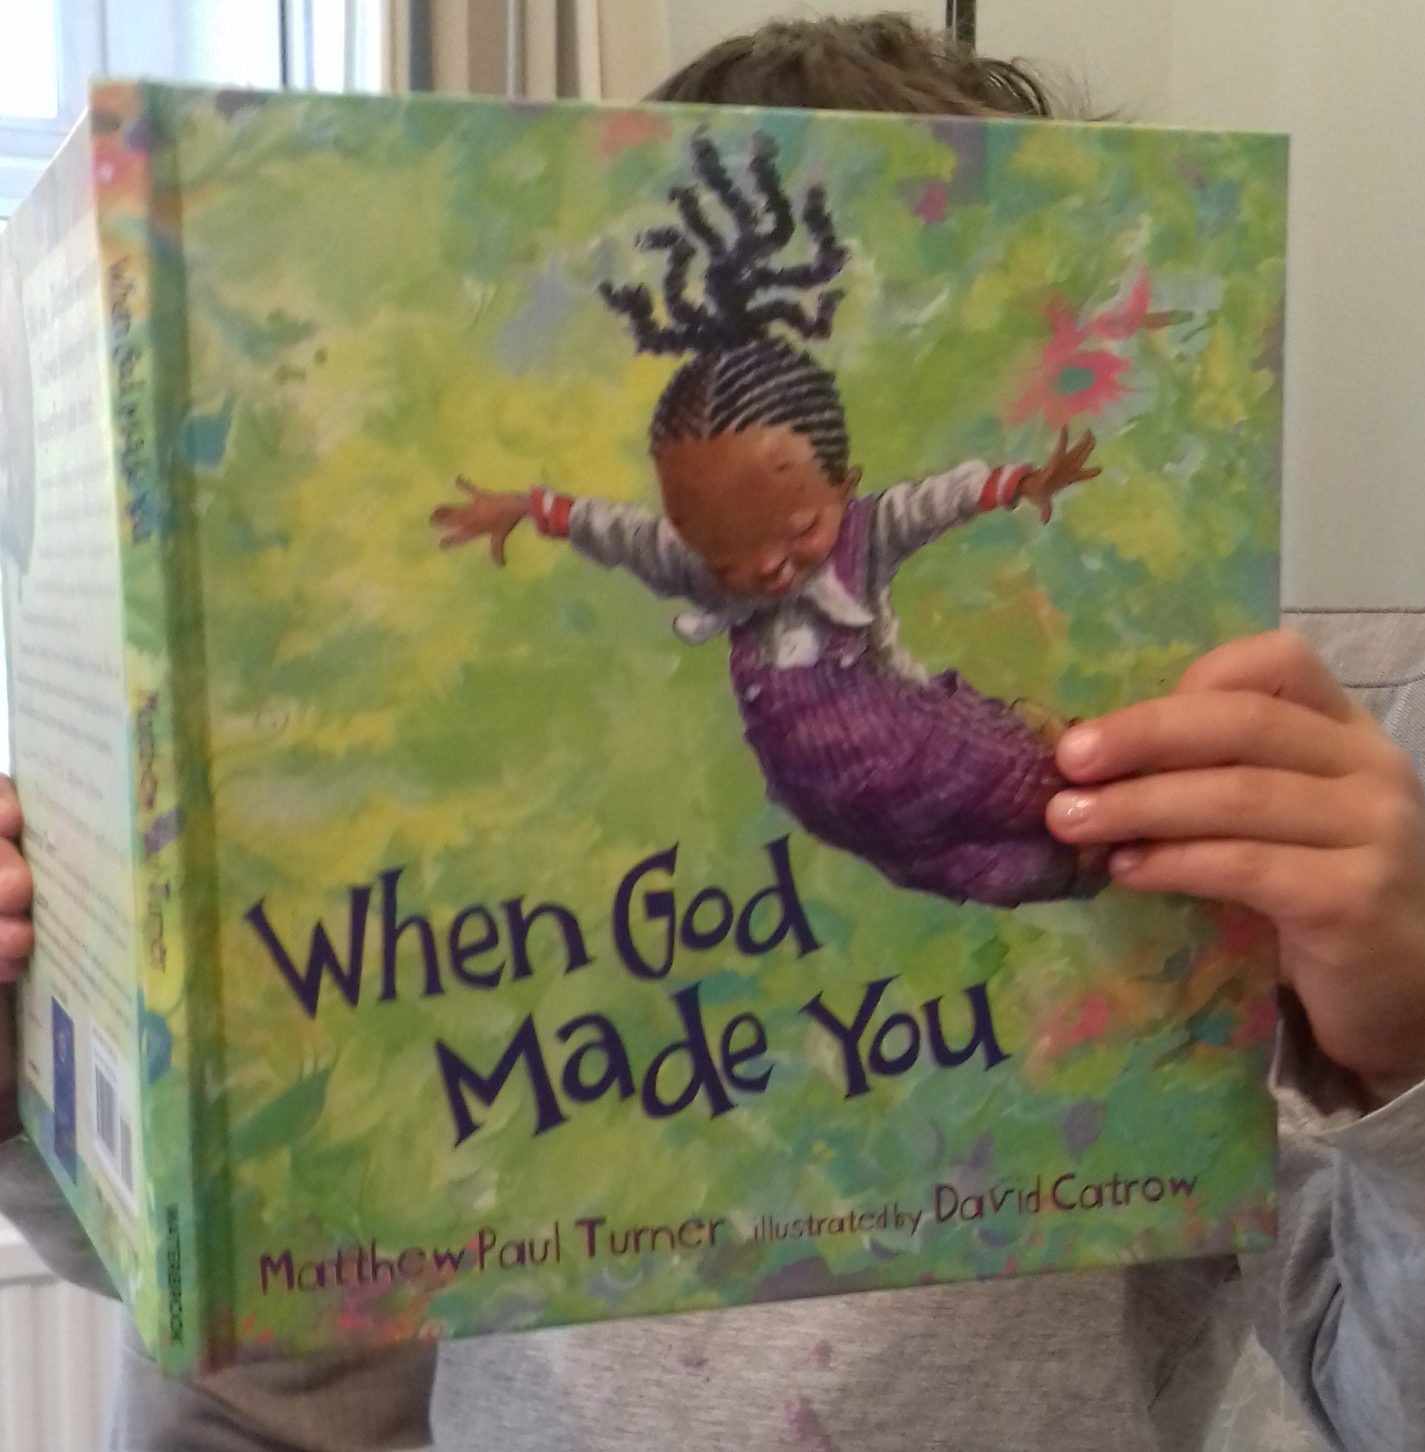 When God made you - The best books for kids about race that they need on their bookshelves. in classrooms and in libraries. These 25+ suggestions have all been enjoyed by our family, and are guaranteed to raise healthy discussions about cultural diversity.